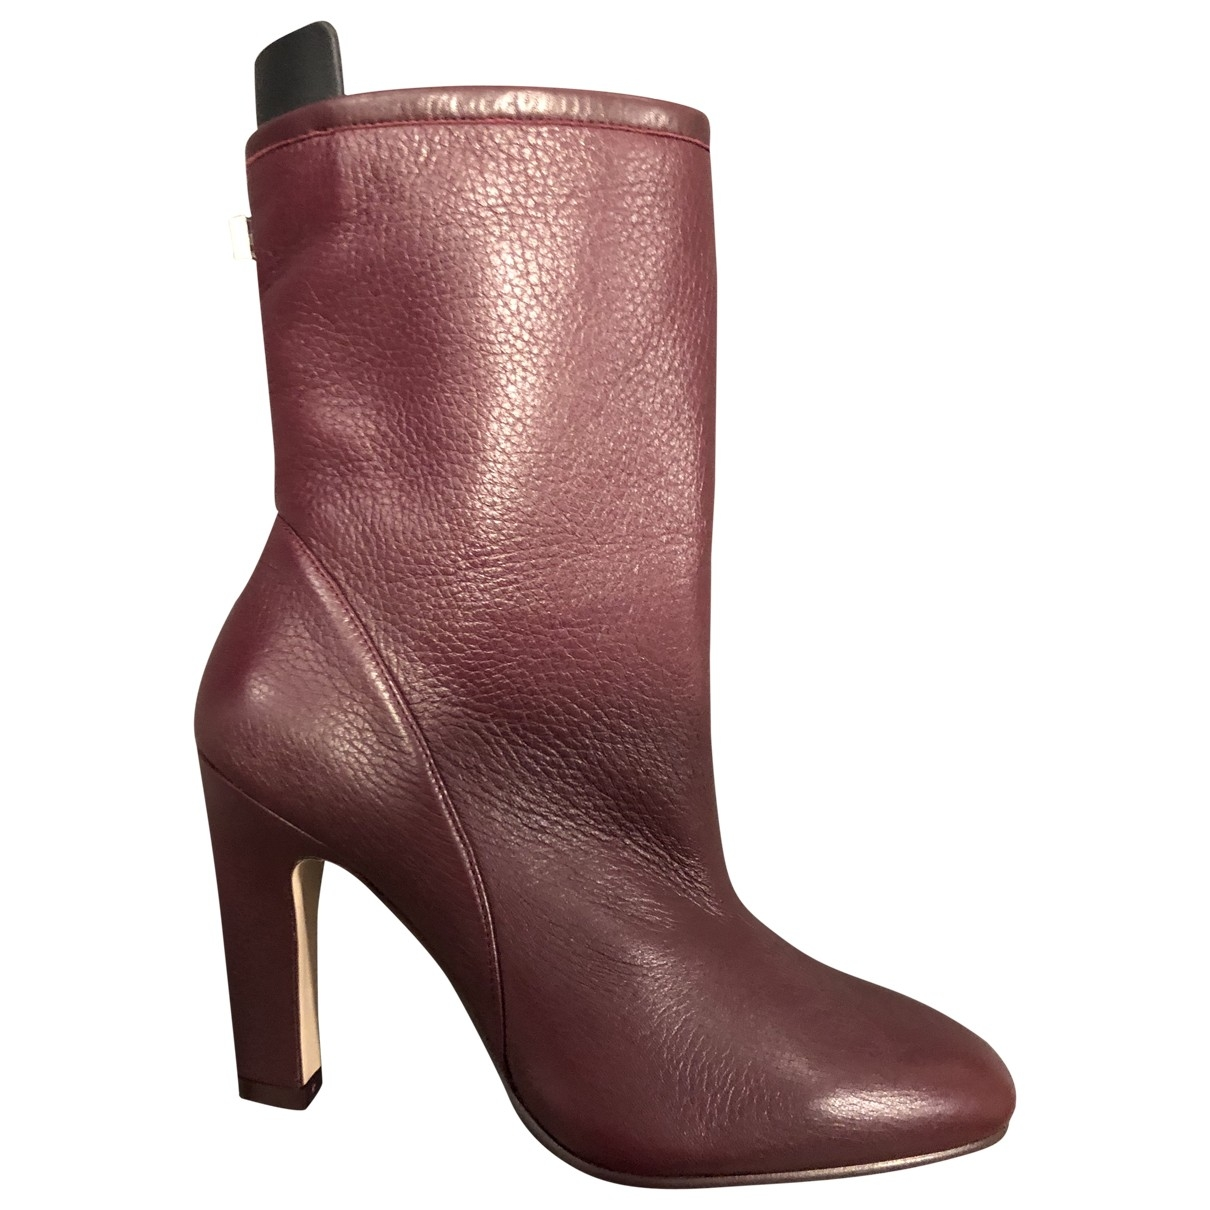 Stuart Weitzman \N Burgundy Leather Ankle boots for Women 37.5 EU